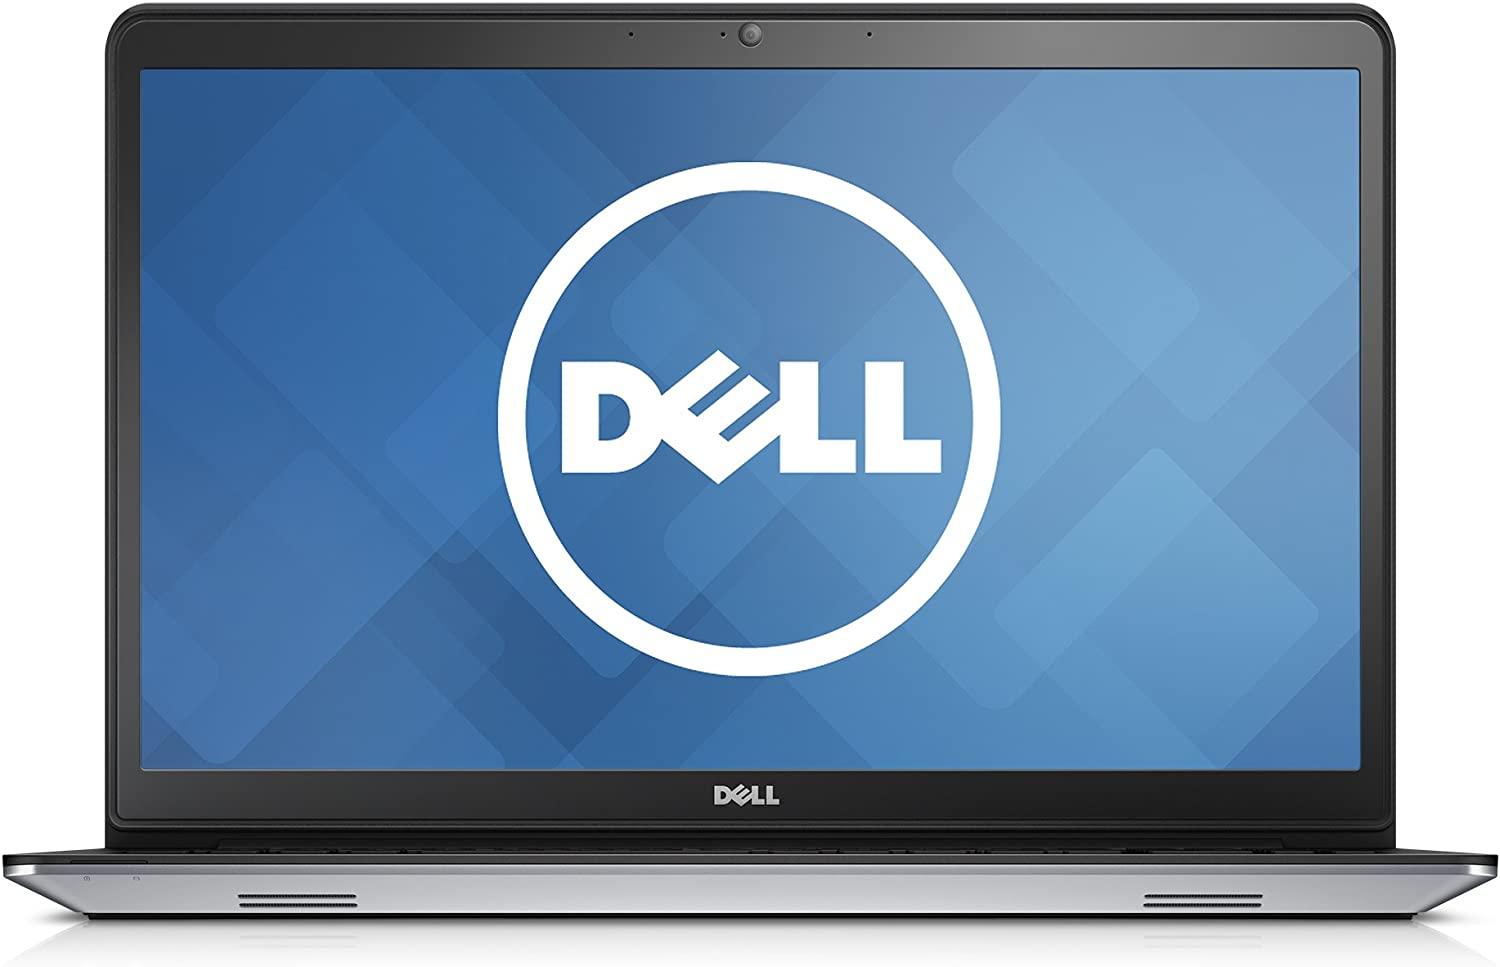 Dell Inspiron 15 5000 Series i5548-1669SLV 15.6-Inch Touchscreen Notebook (2.20 GHz Intel Core i5 Processor, 8 GB Memory, 1 TB Hard Drive, Windows 8.1) Silver [Discontinued By Manufacturer]